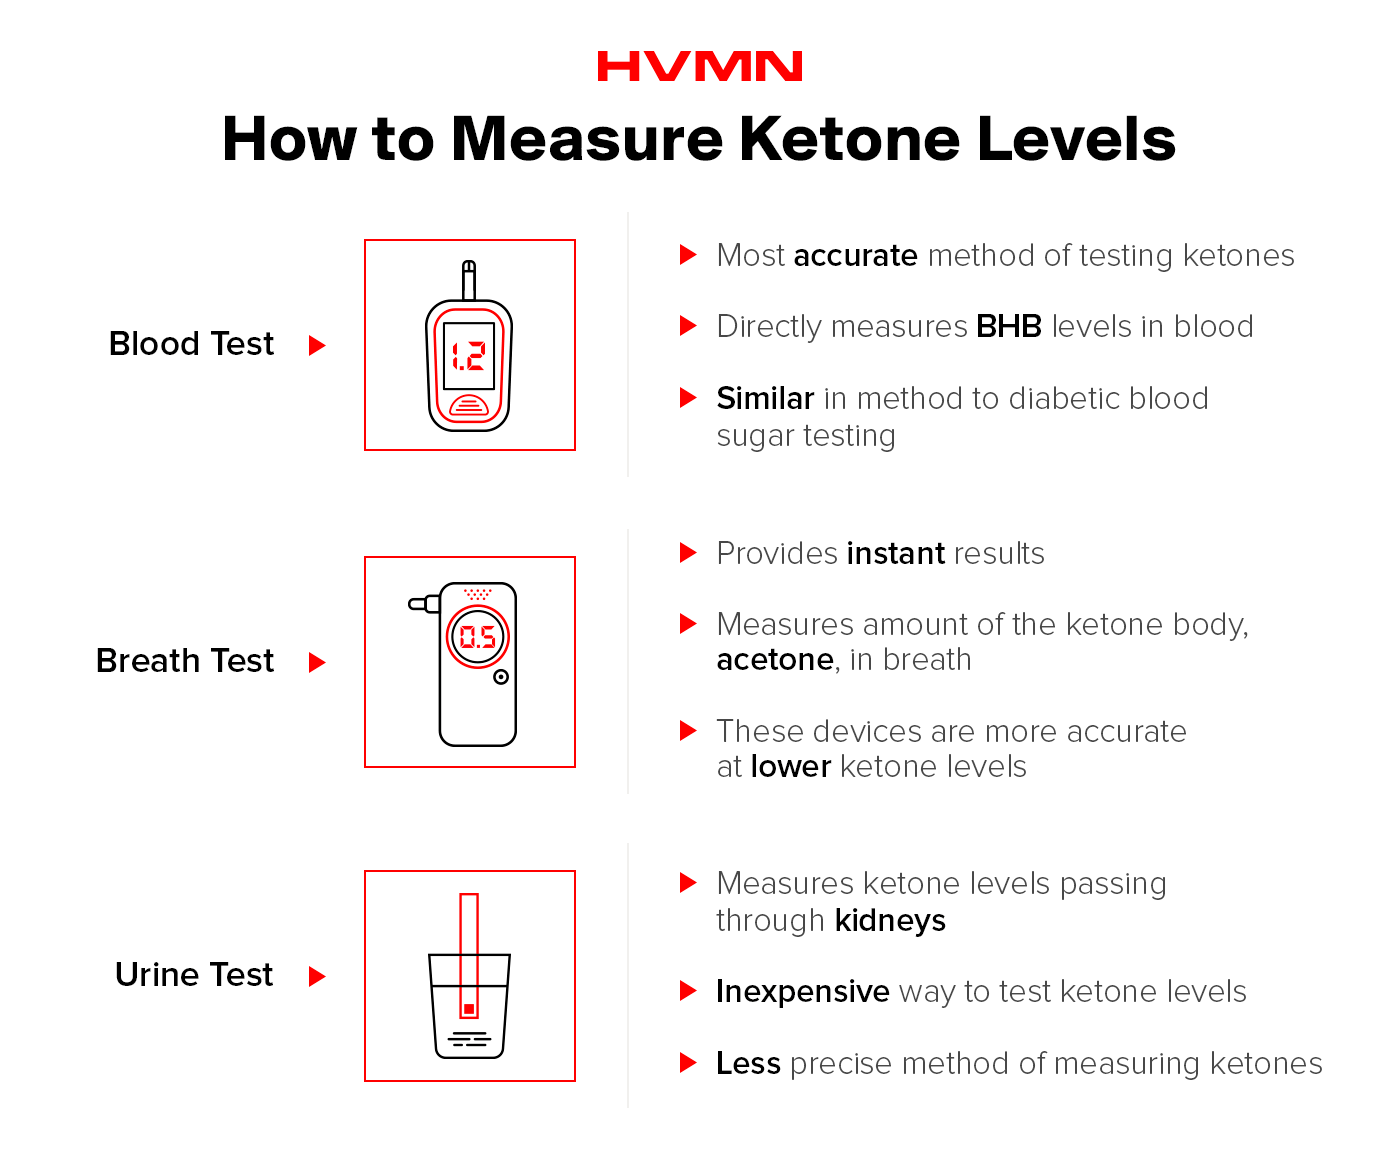 Illustrations of a blood meter, a breath meter and a urine test, showing the different ways to measure ketone levels